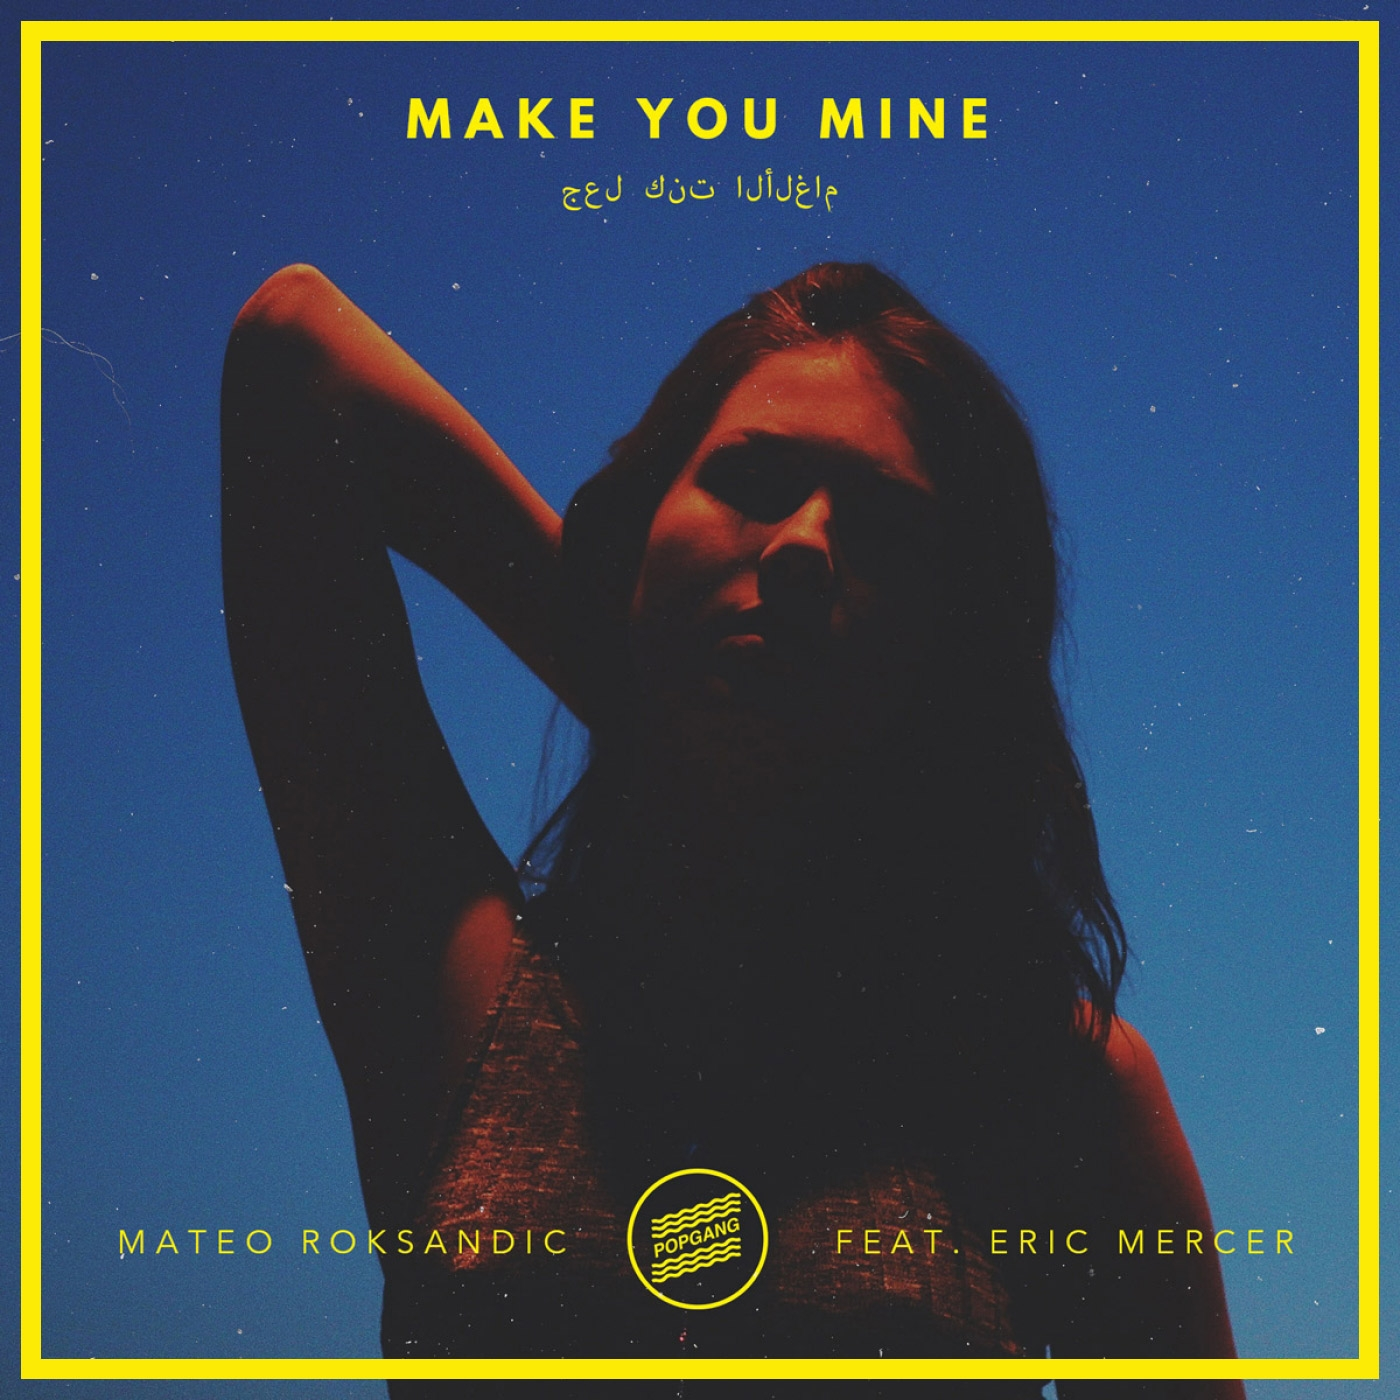 Mateo Roksandic - Make You Mine feat Eric Mercer